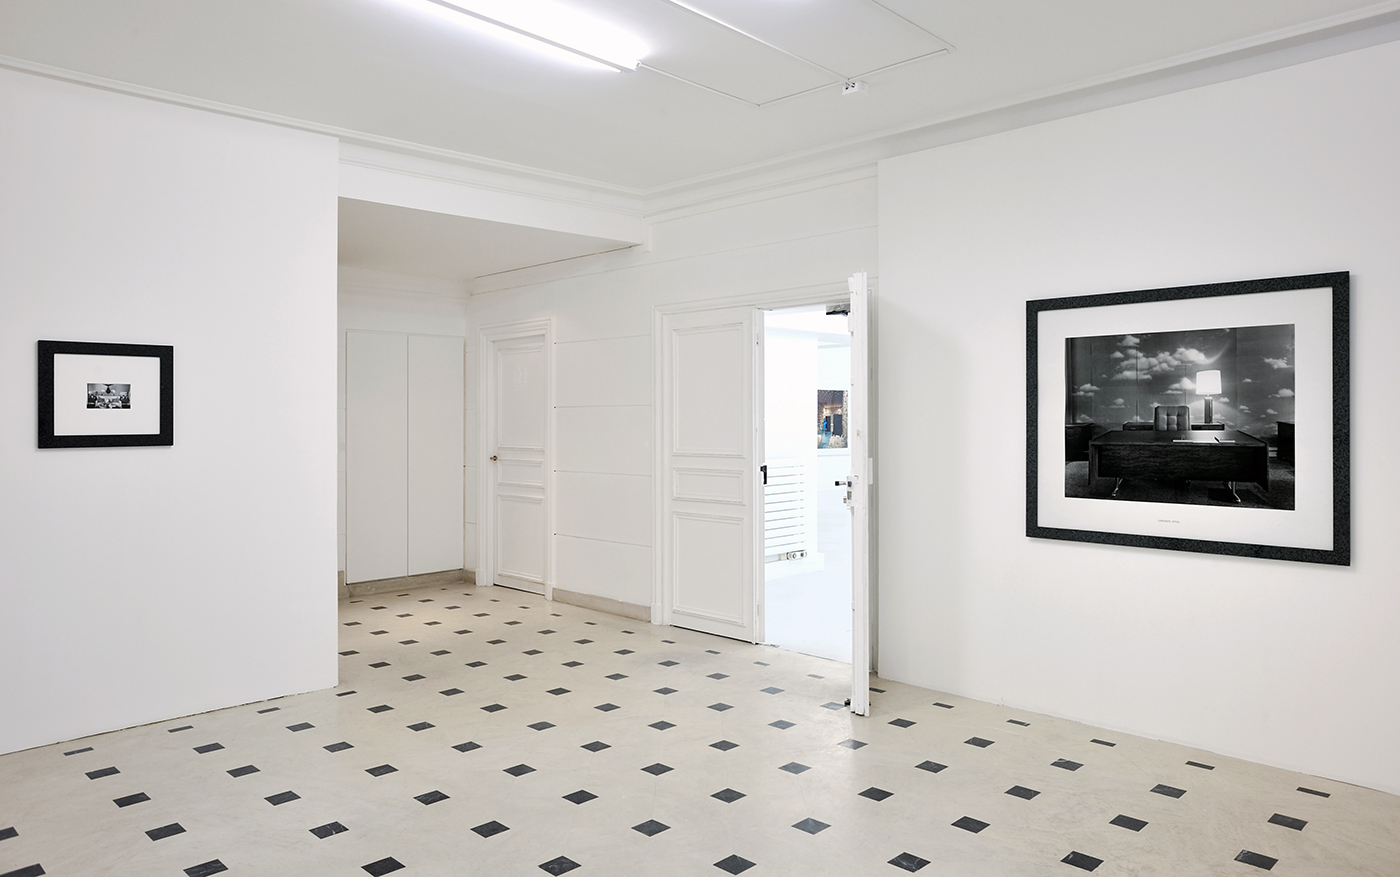 Lynne Cohen / Estate  - Exhibition view - Un hommage - Galerie in situ - Fabienne Leclerc, Paris, 2015